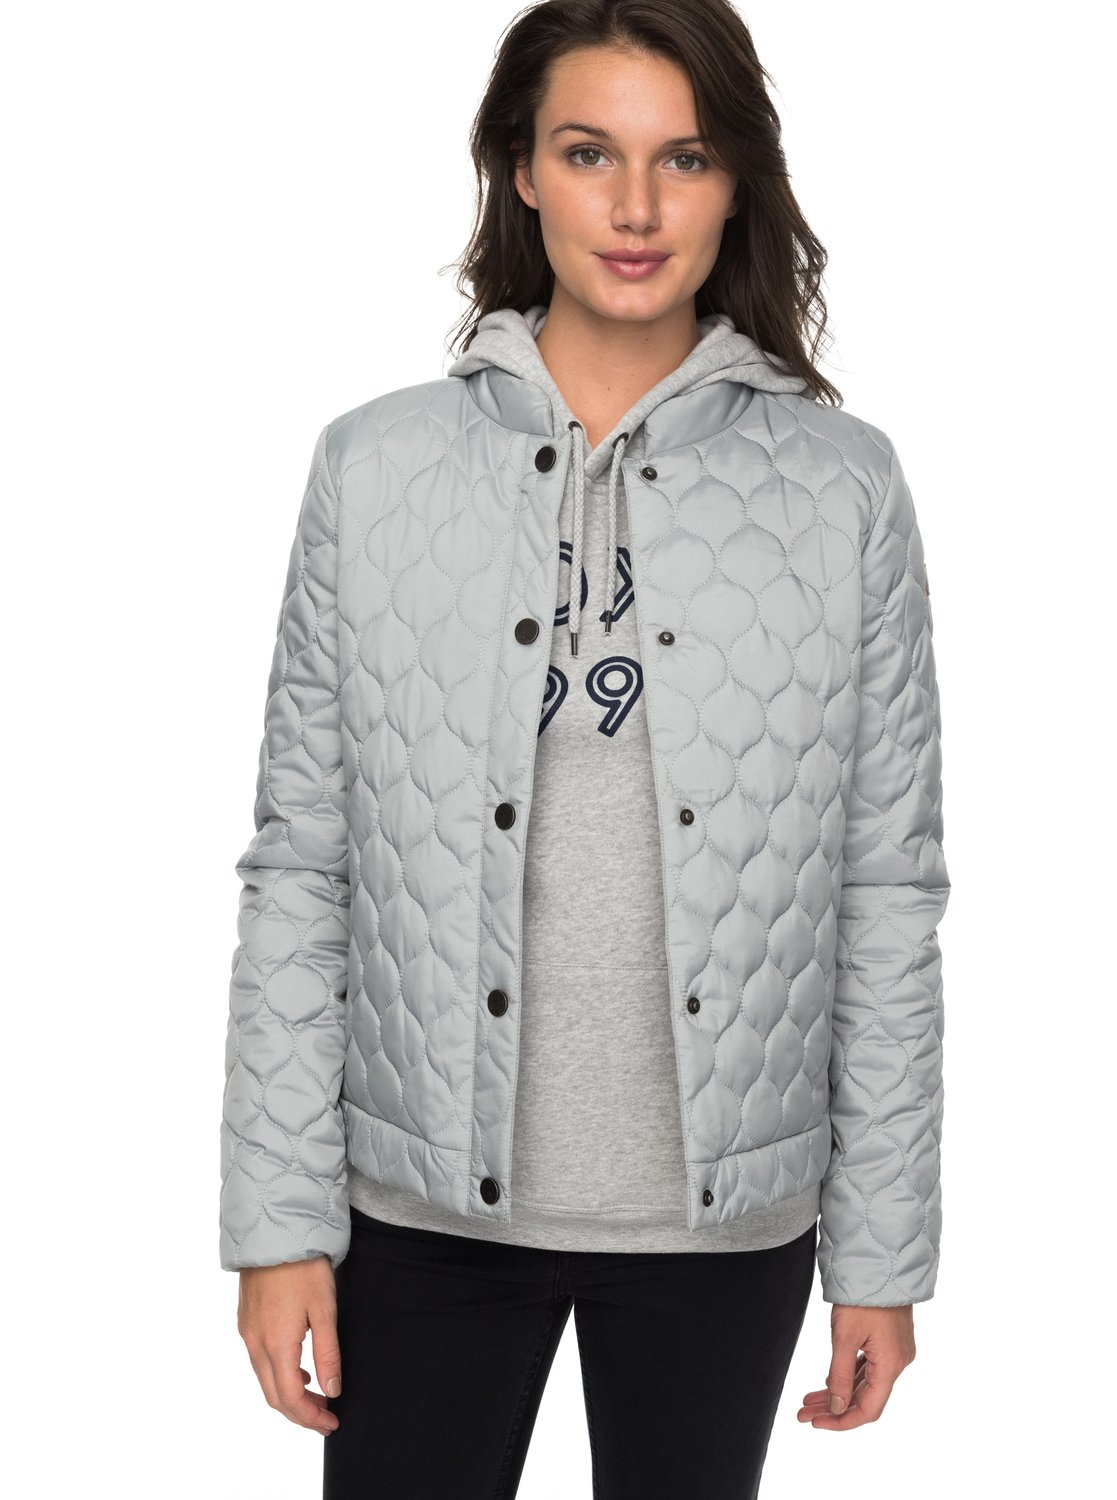 acaf77254 Funky Spirit - Quilted Puffer Jacket for Women